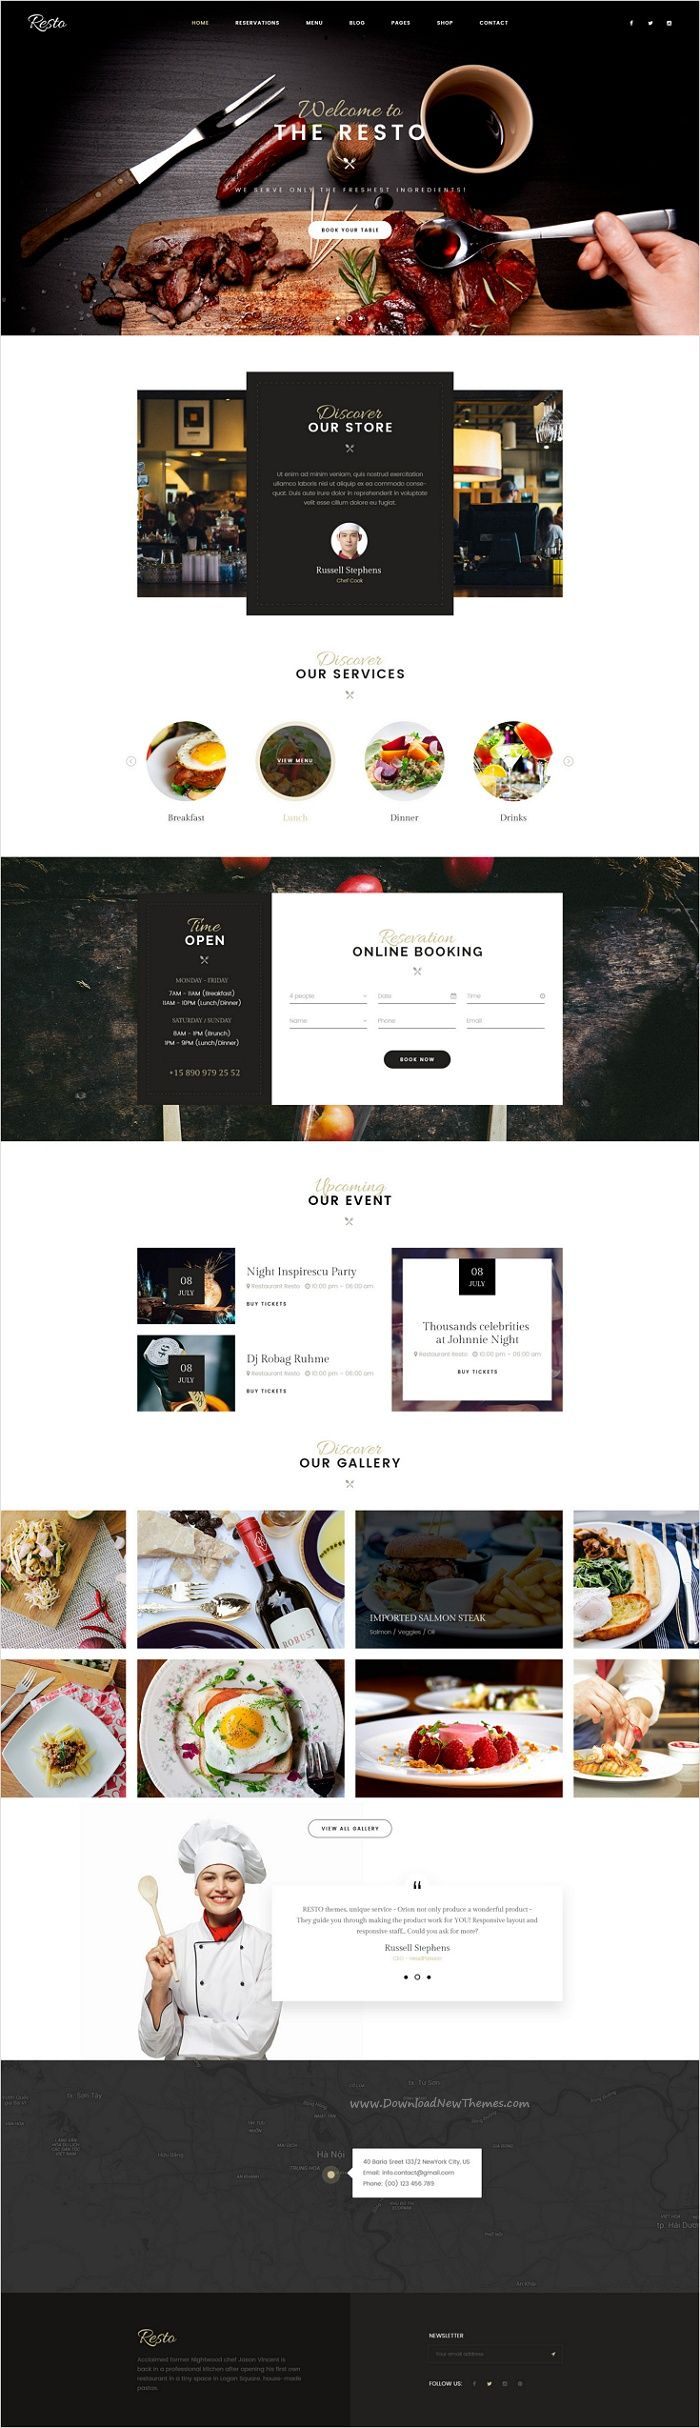 Neue Website für Ihr Restaurant? https://www.media-company.eu/webdesign-duesseldorf-agentur.php